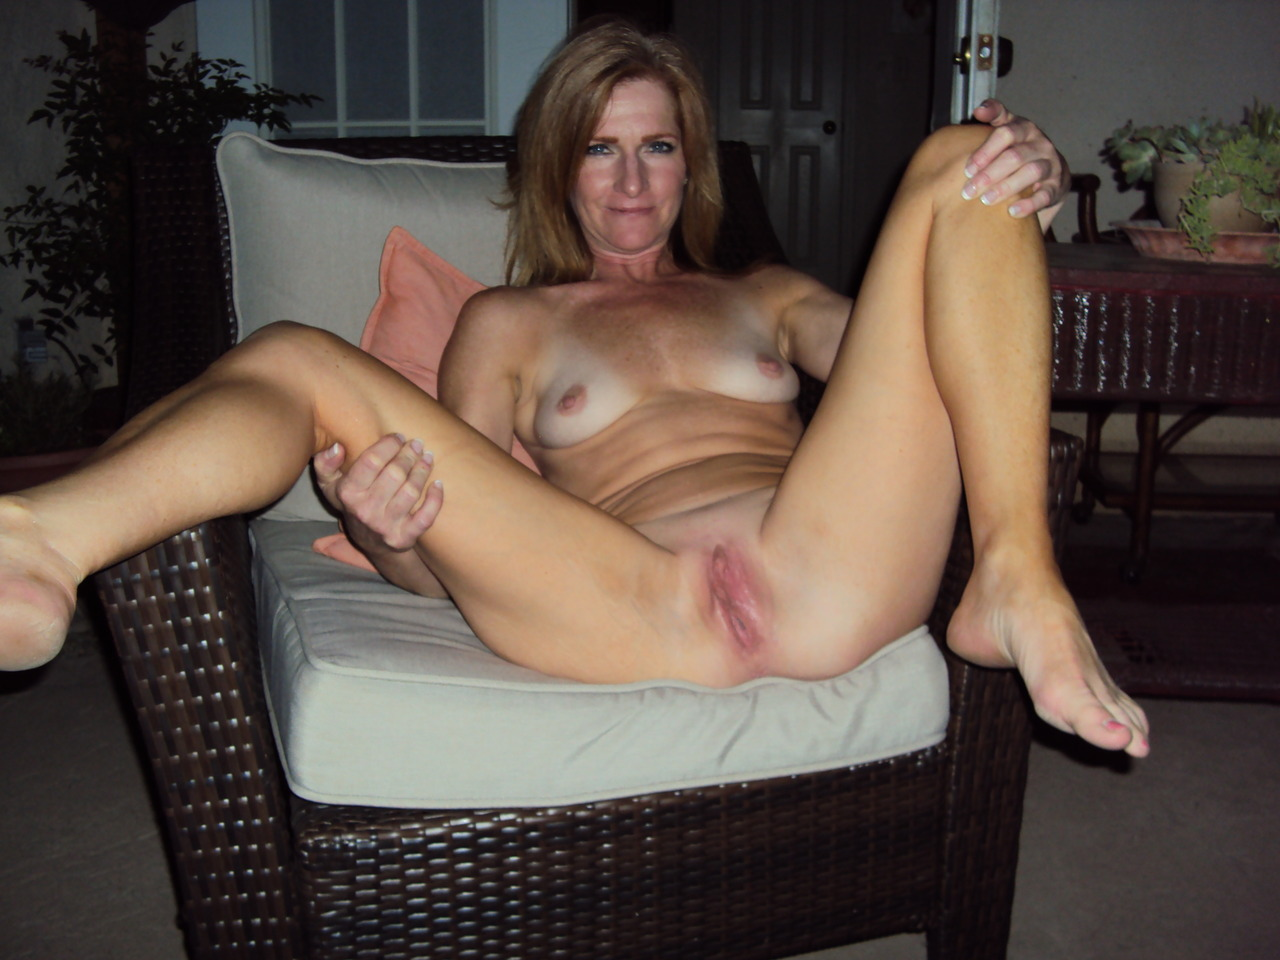 Agree with sexy amateur milfs exposed like tell